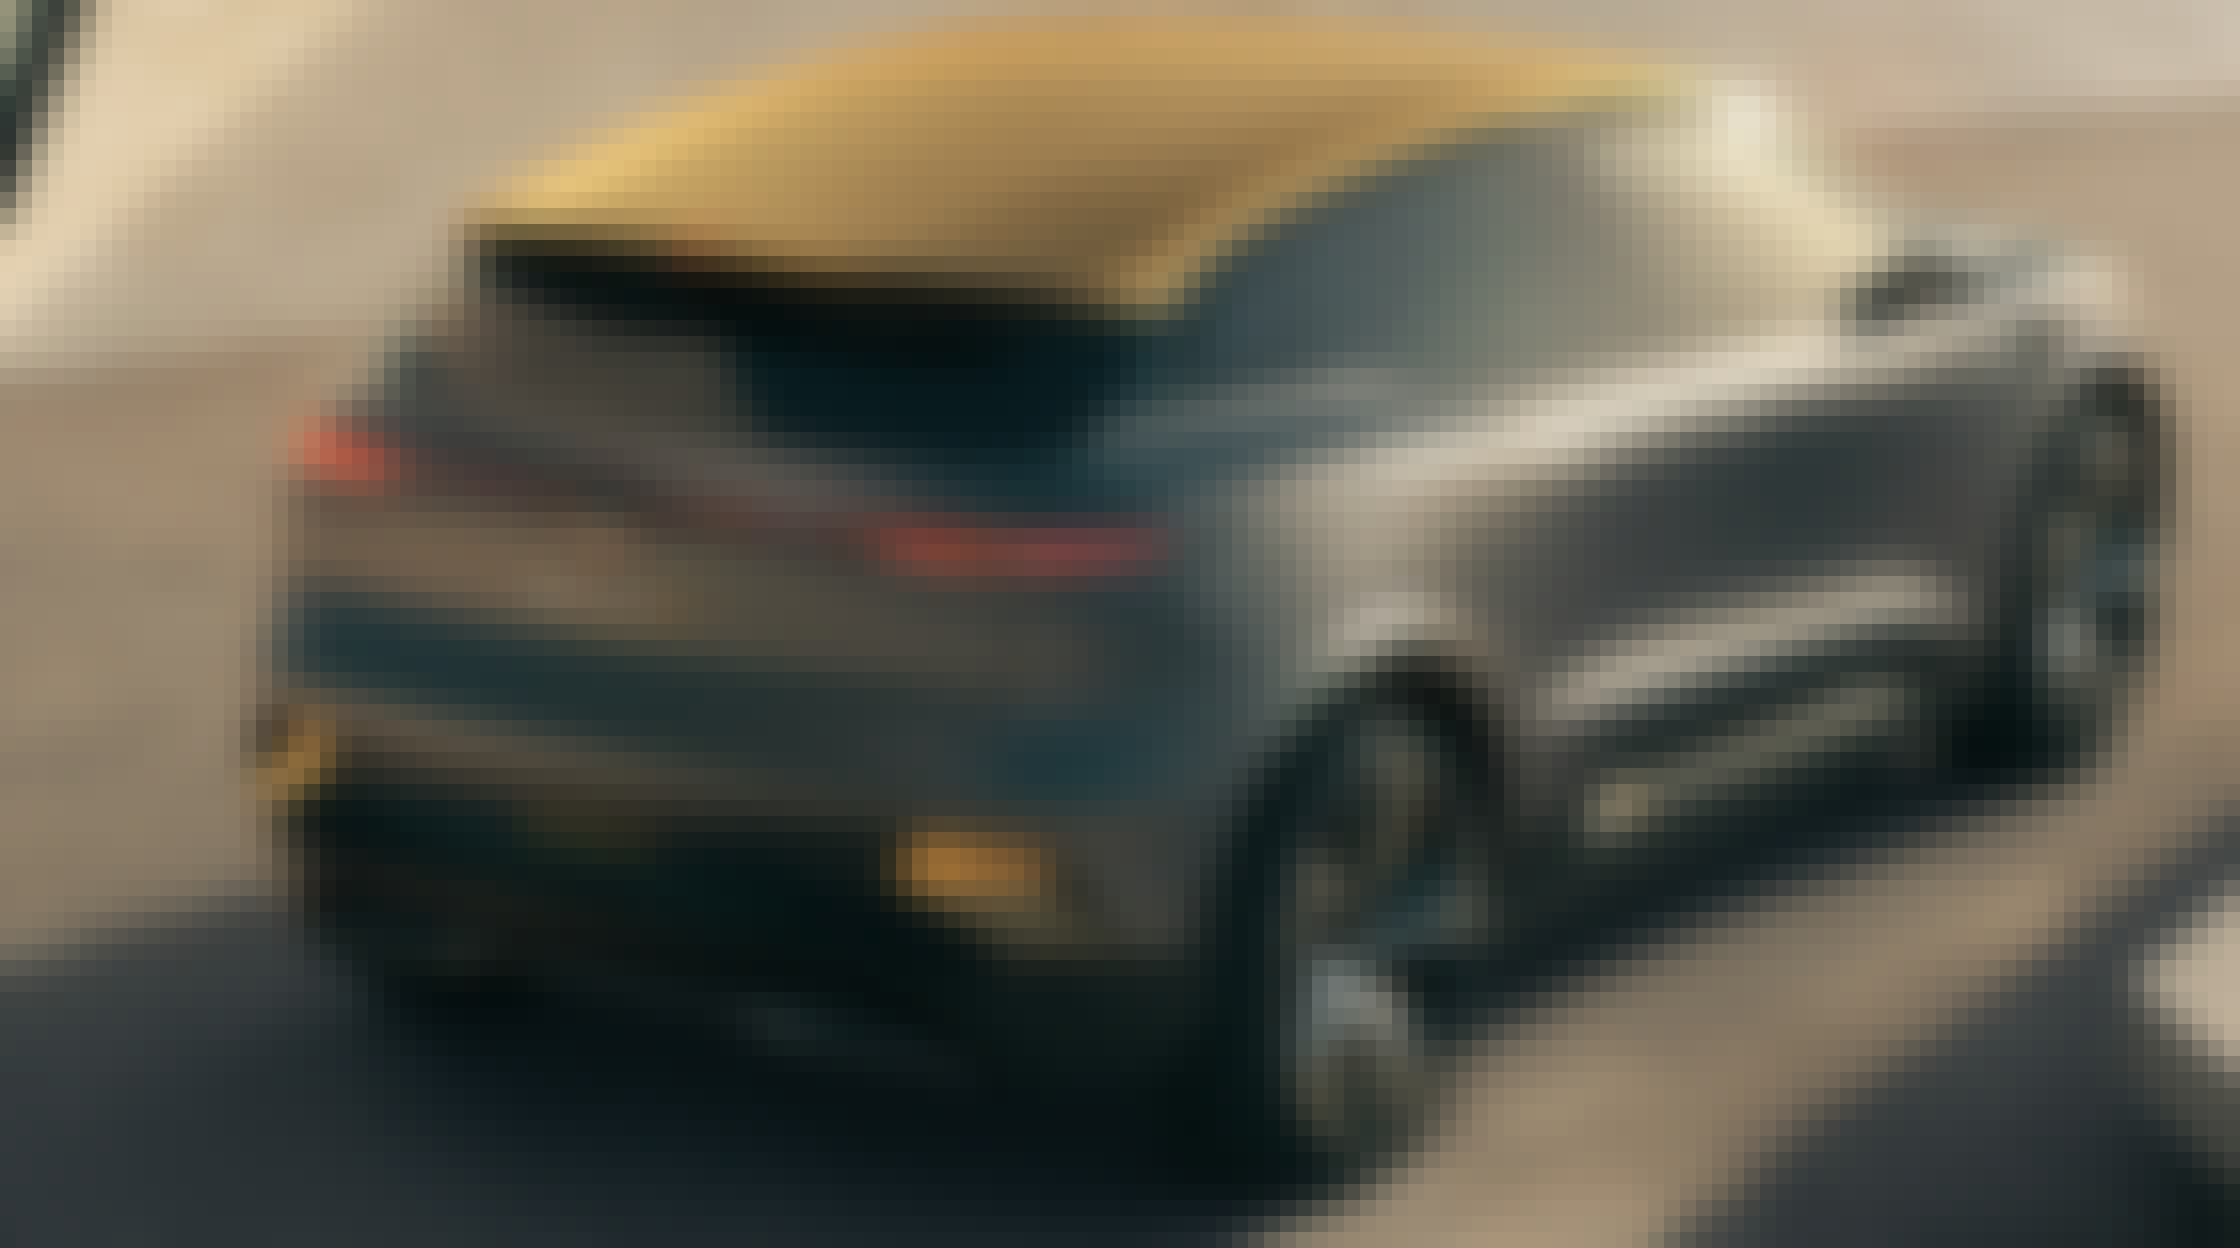 Renault MEGANE eVISION viewed from the back